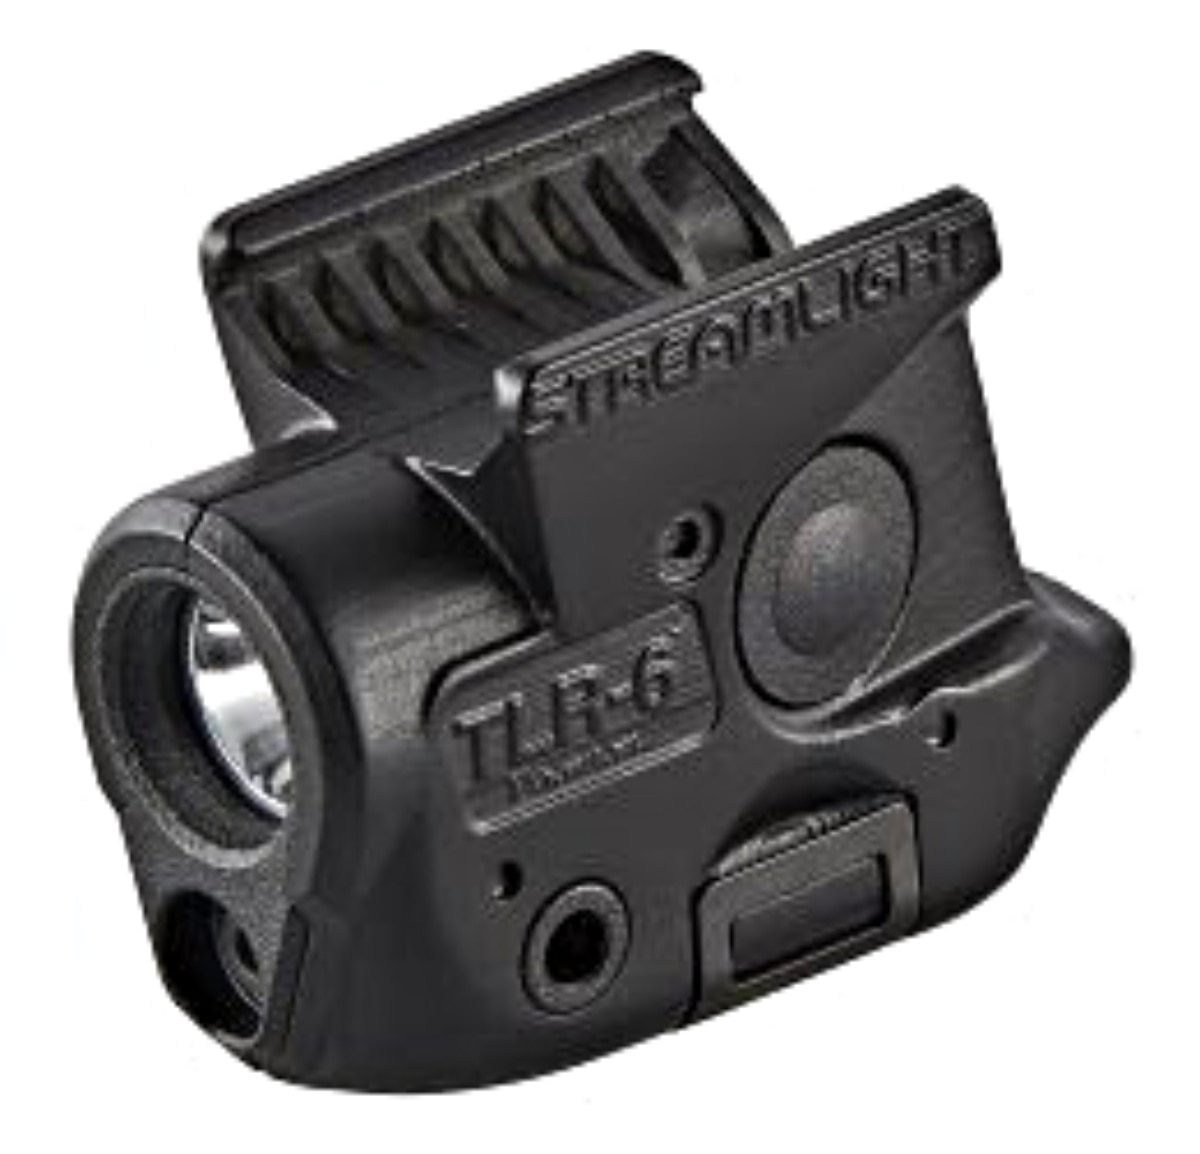 STREAMLIGHT introduces TLR-6 for use with SIG SAUER P365